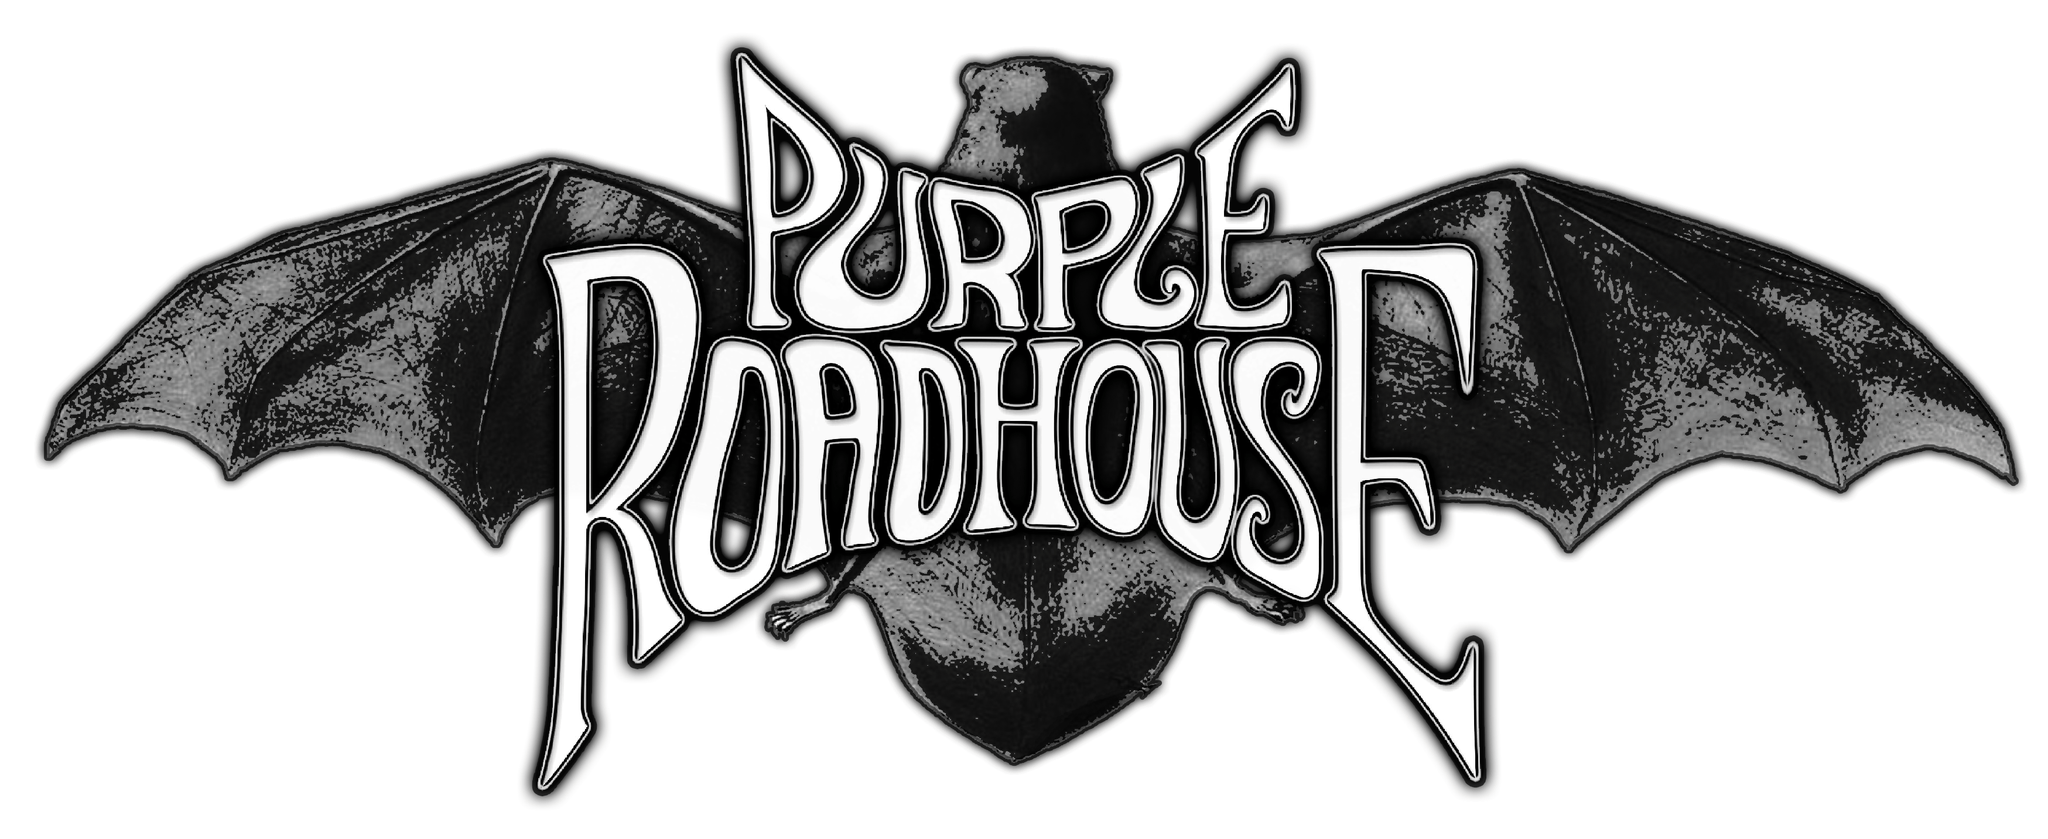 Purple Roadhouse